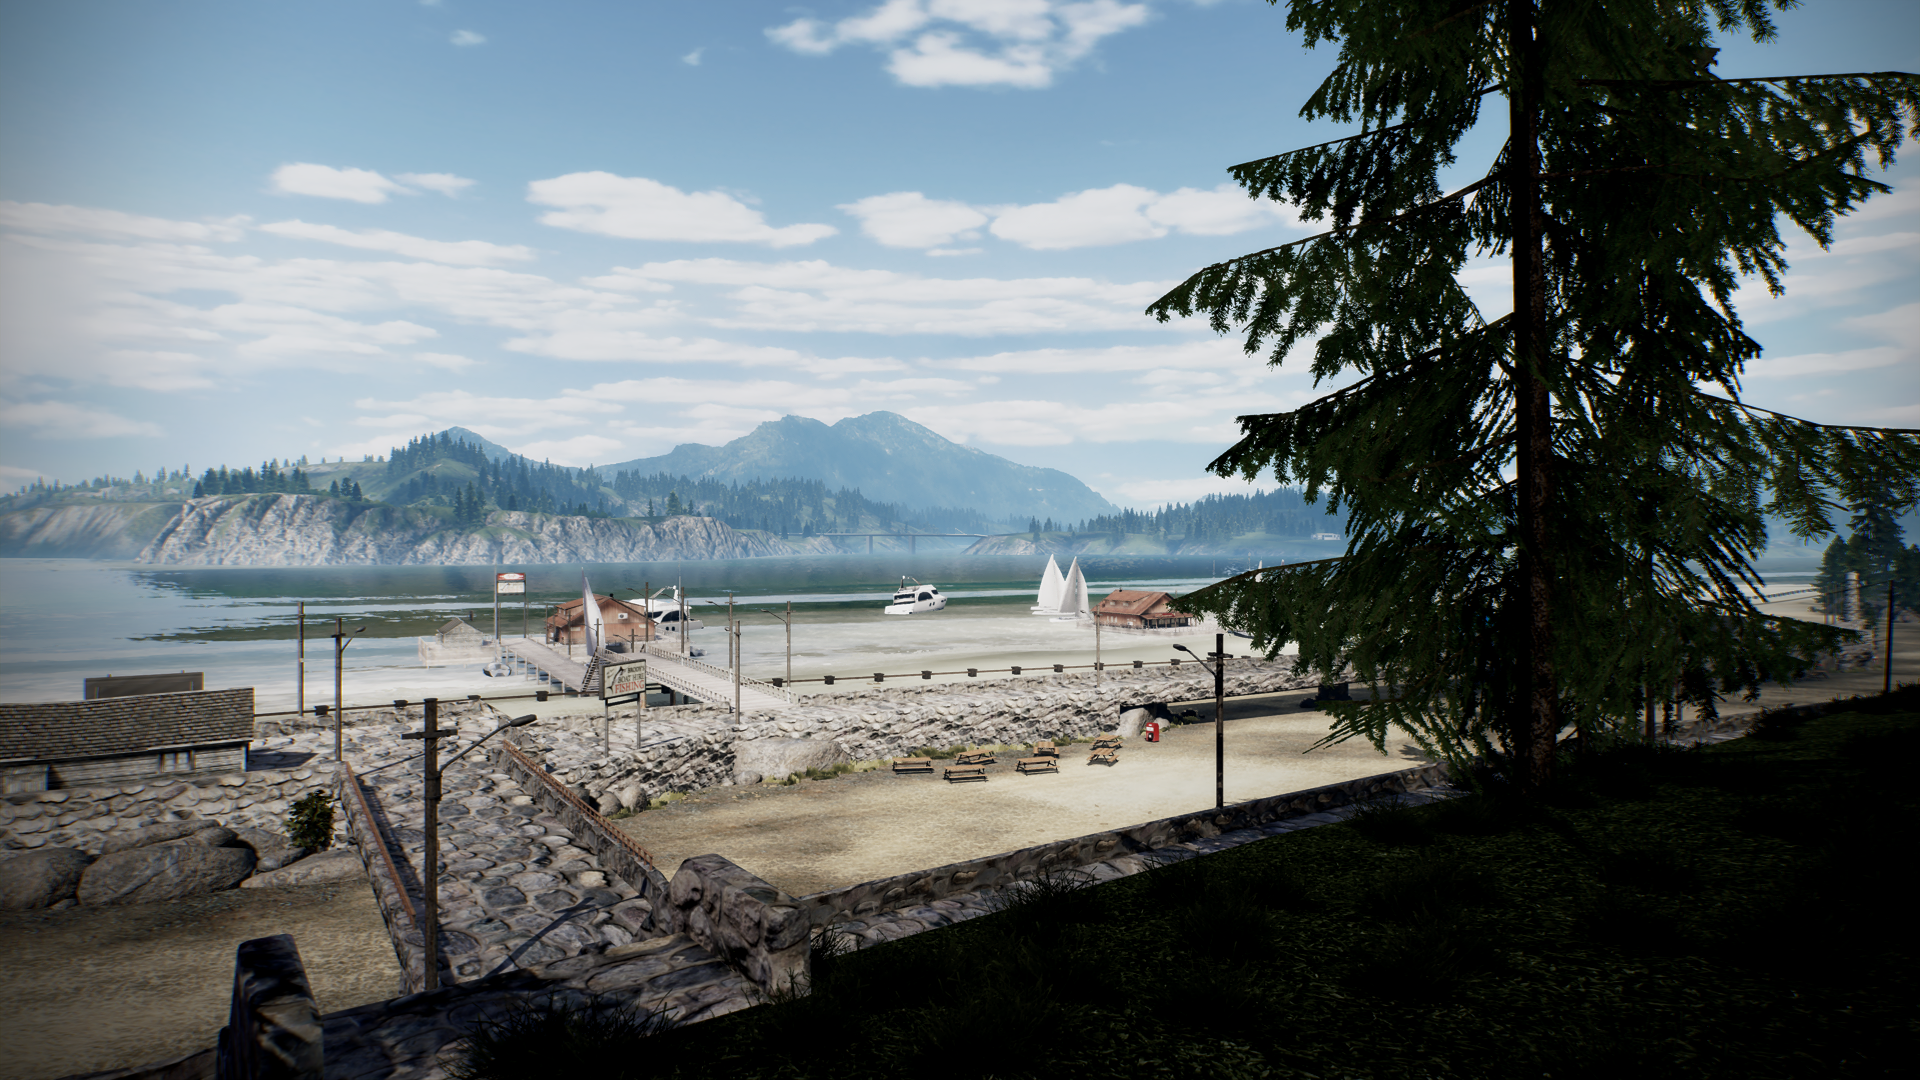 Need For Speed Hot Pursuit Beach Screen Shot 1920x1080